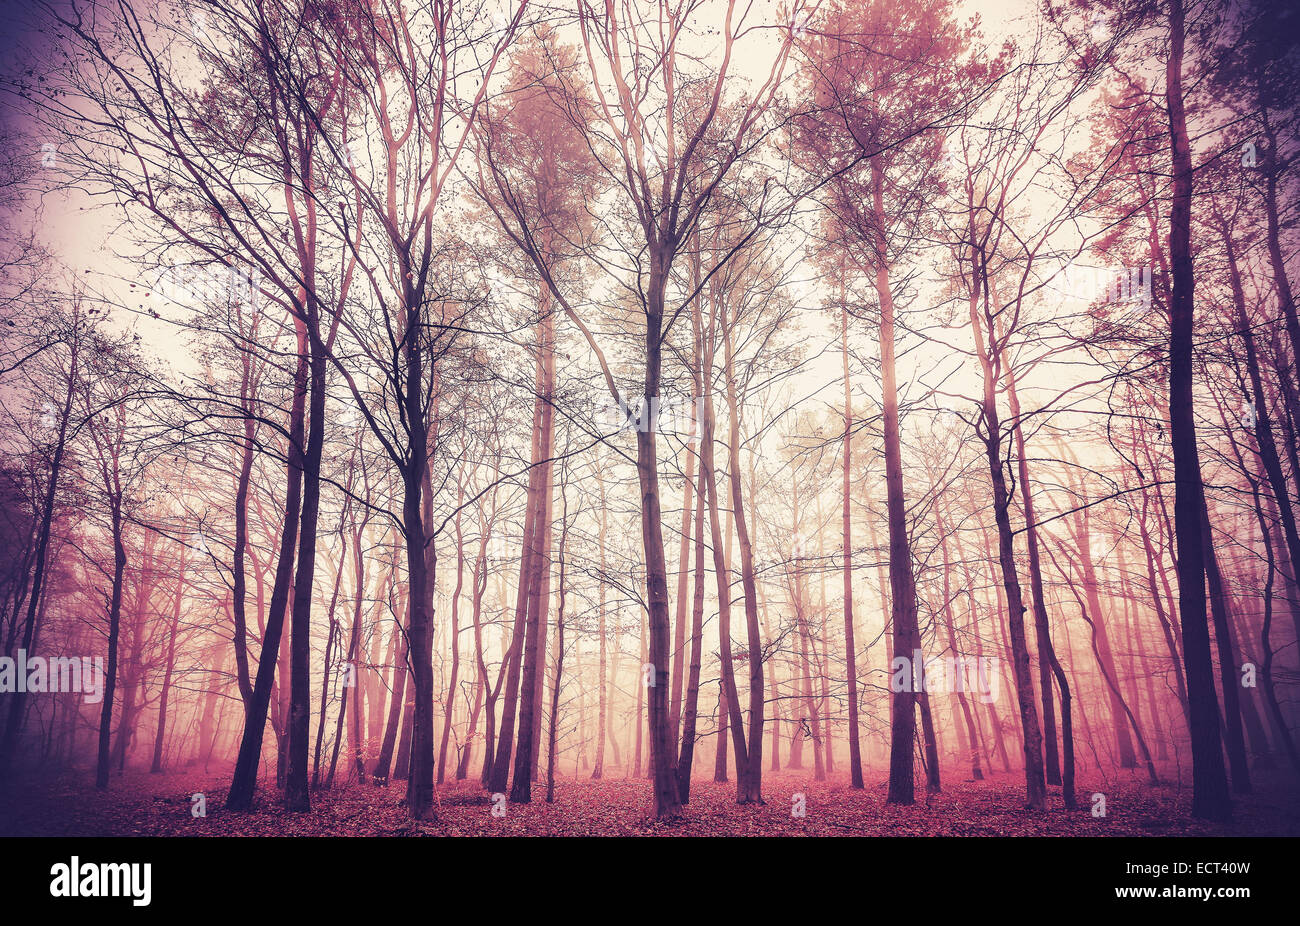 Retro filtered picture of mysterious forest background. - Stock Image